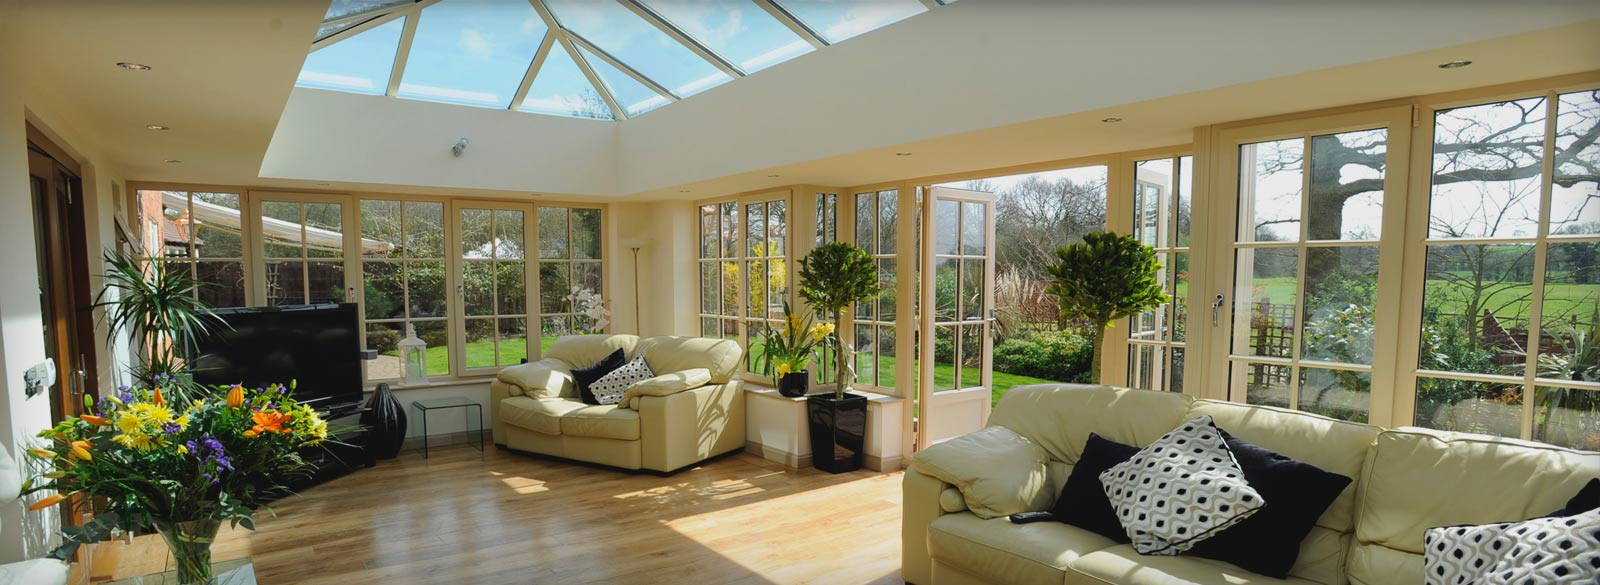 Modern conservatory design with a central apex skylight